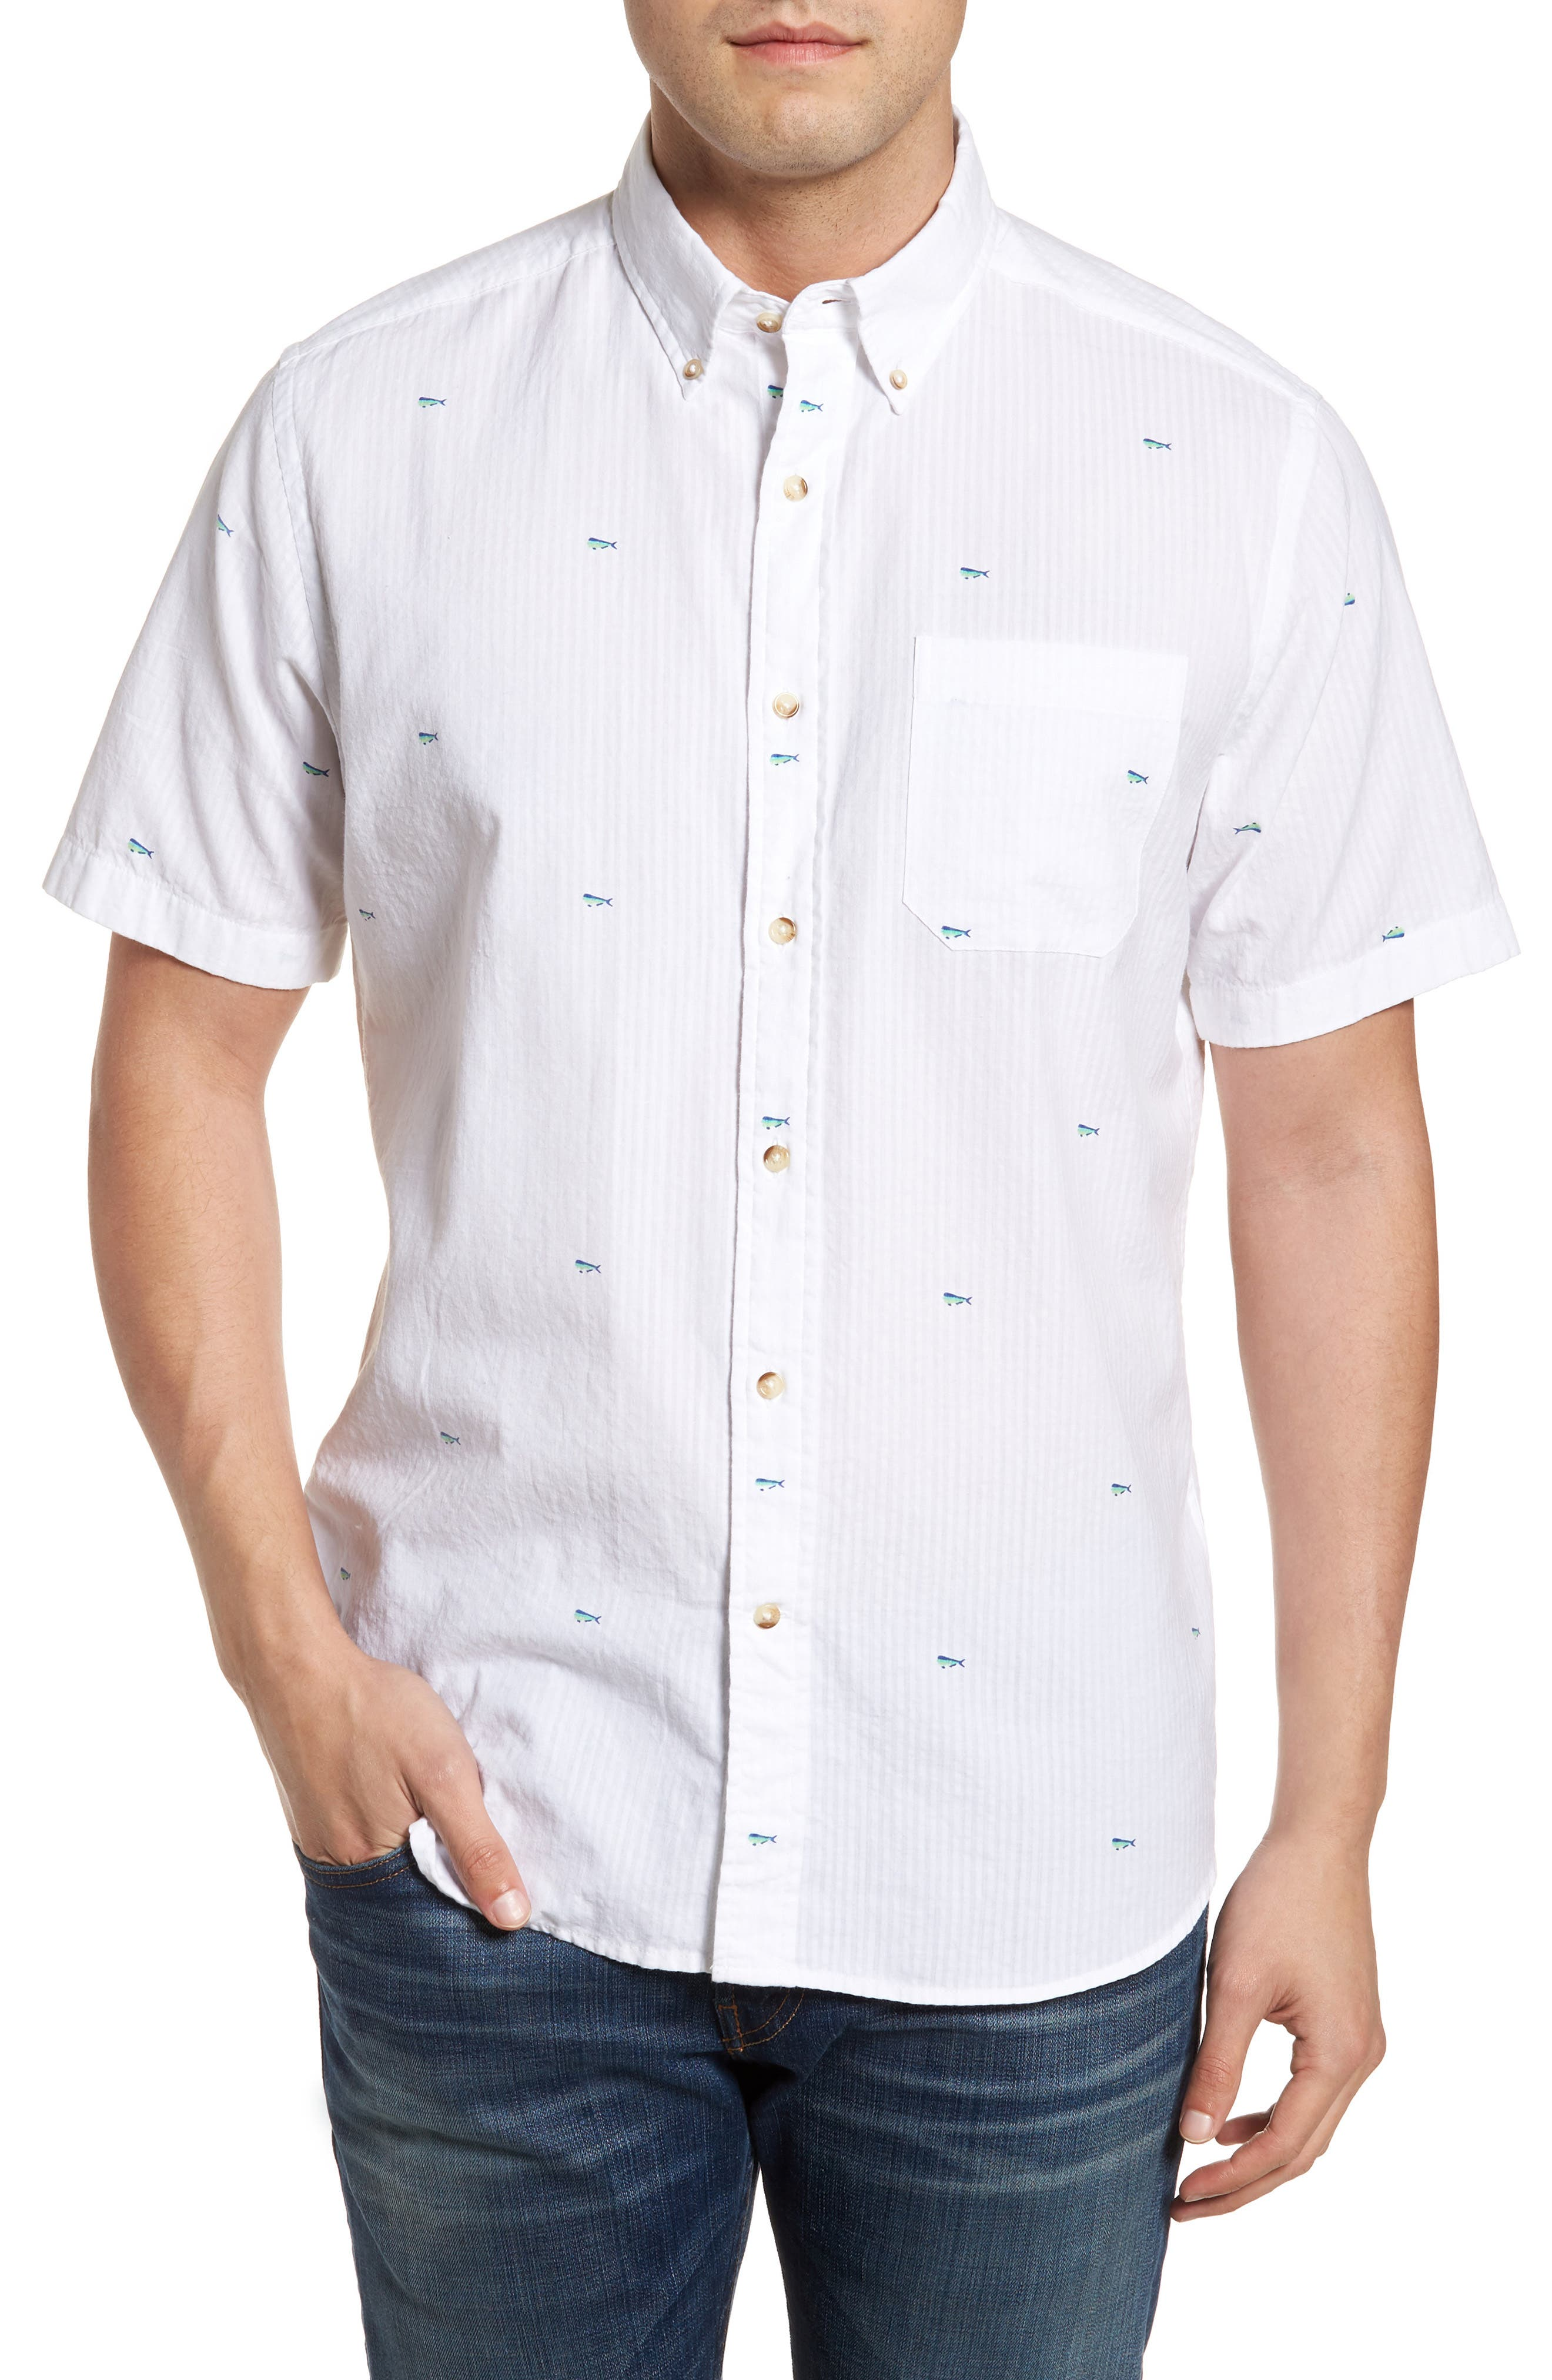 Southern Tide Catch of the Day Sport Shirt